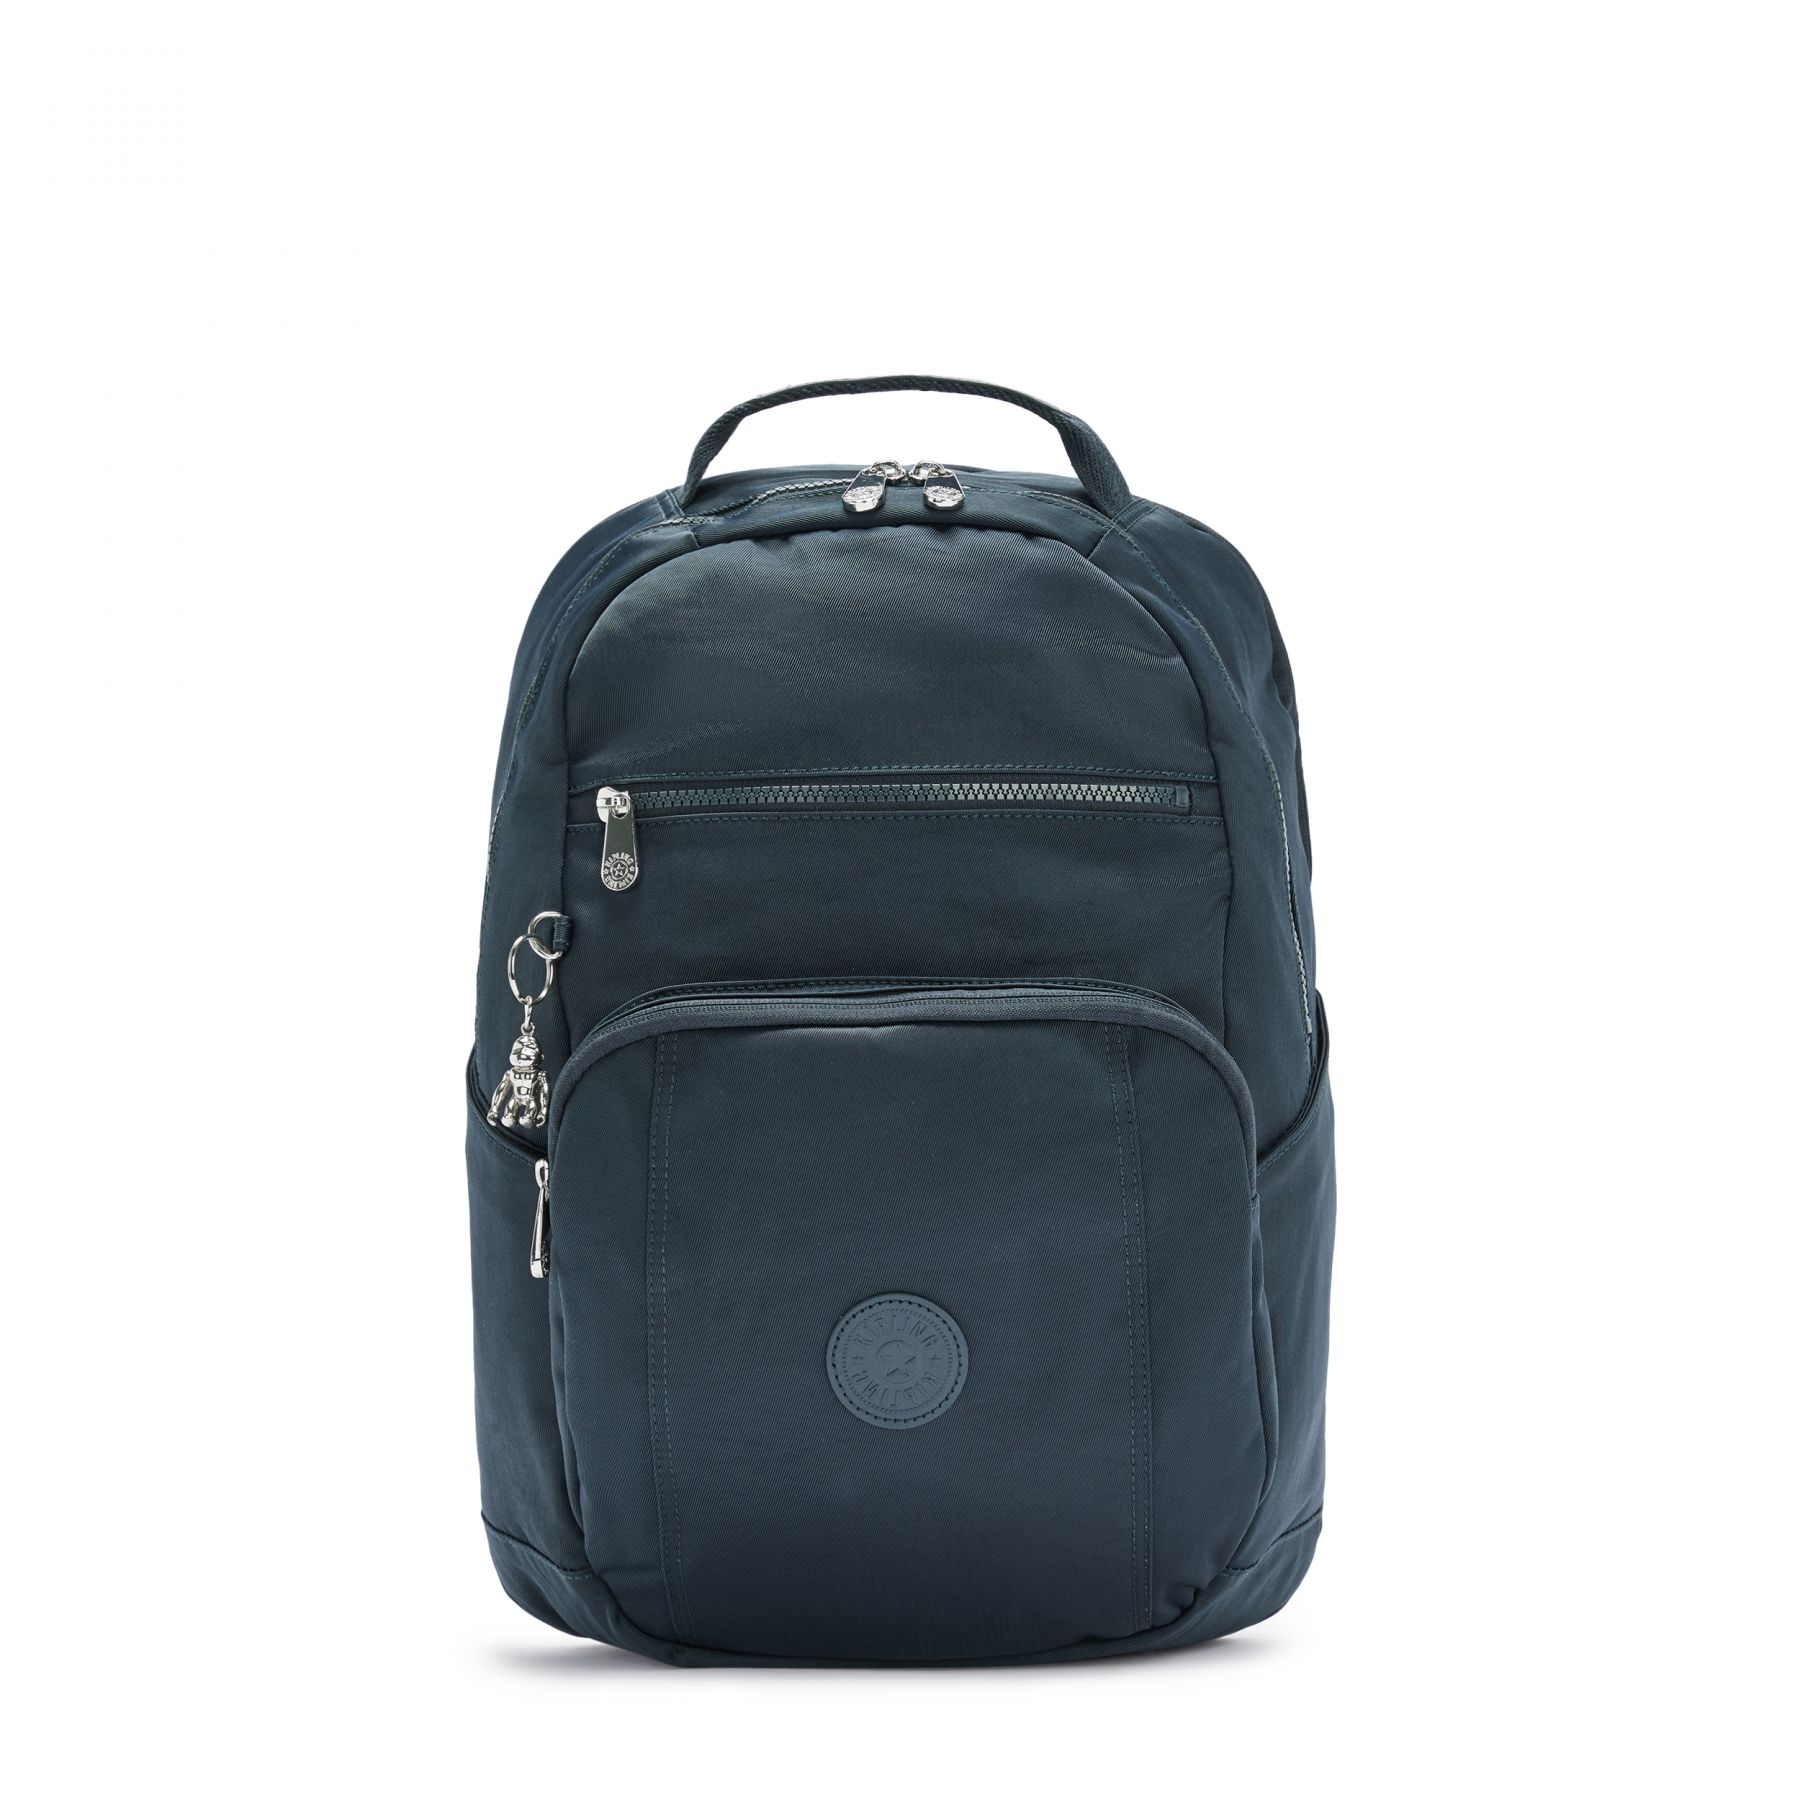 TROY BACKPACKS by Kipling